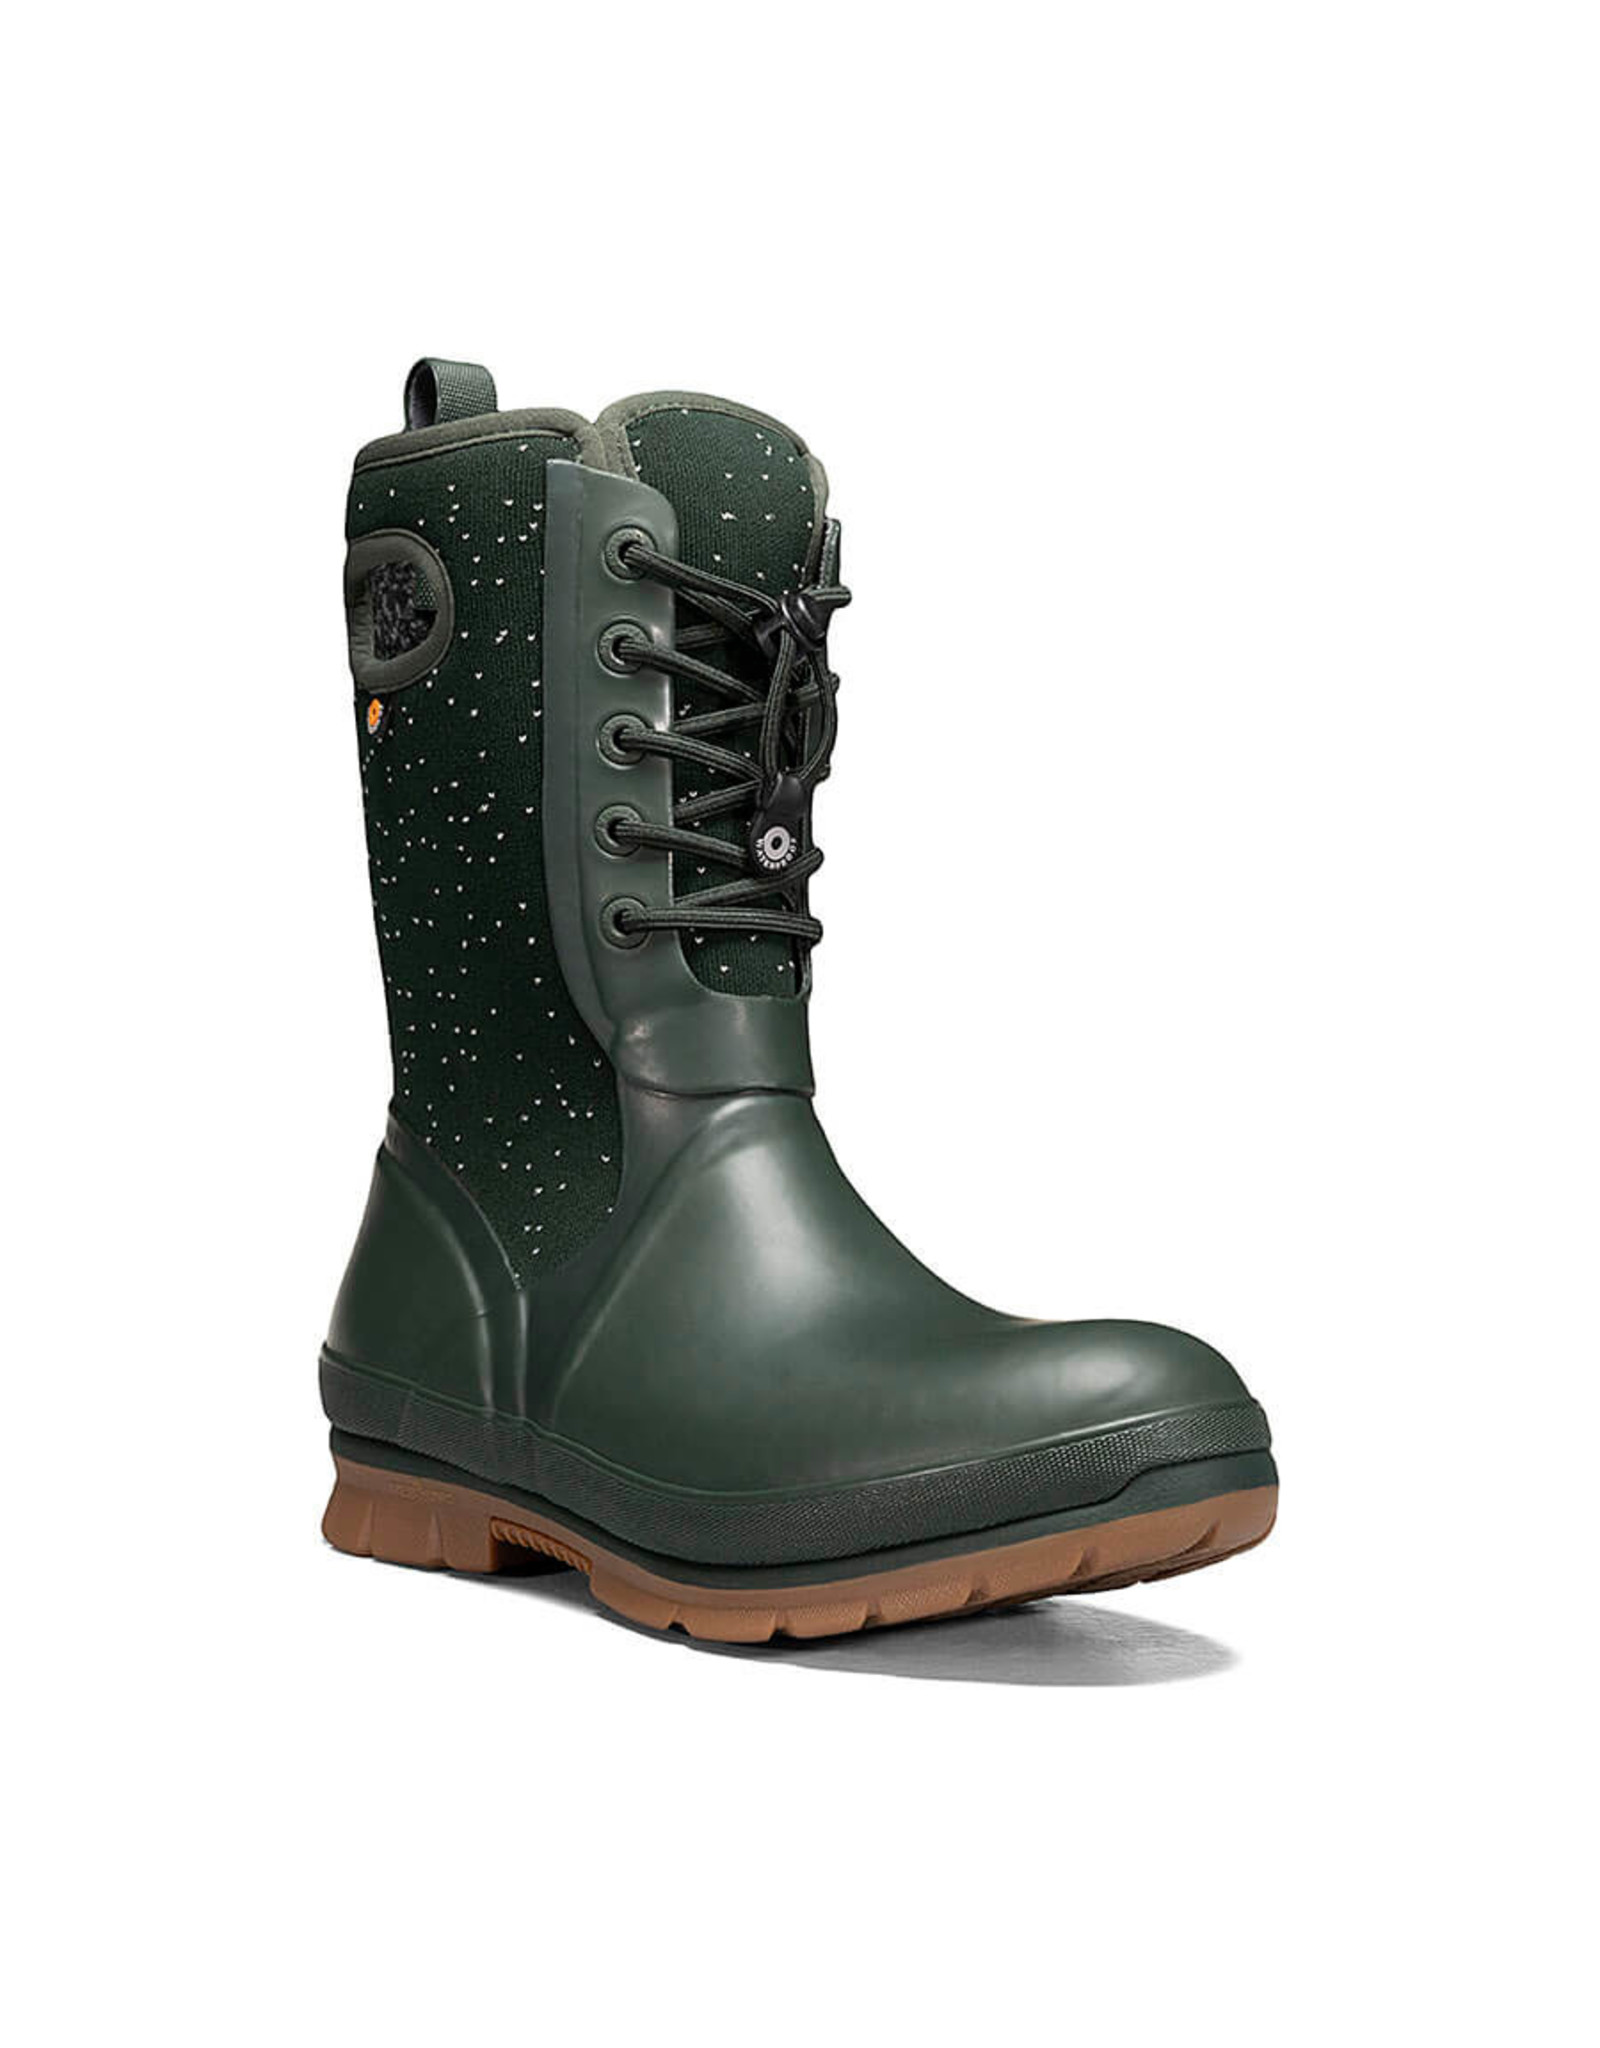 BOGS WOMEN'S CRANDALL LACE SPECKLE BOOT-DARK GREEN